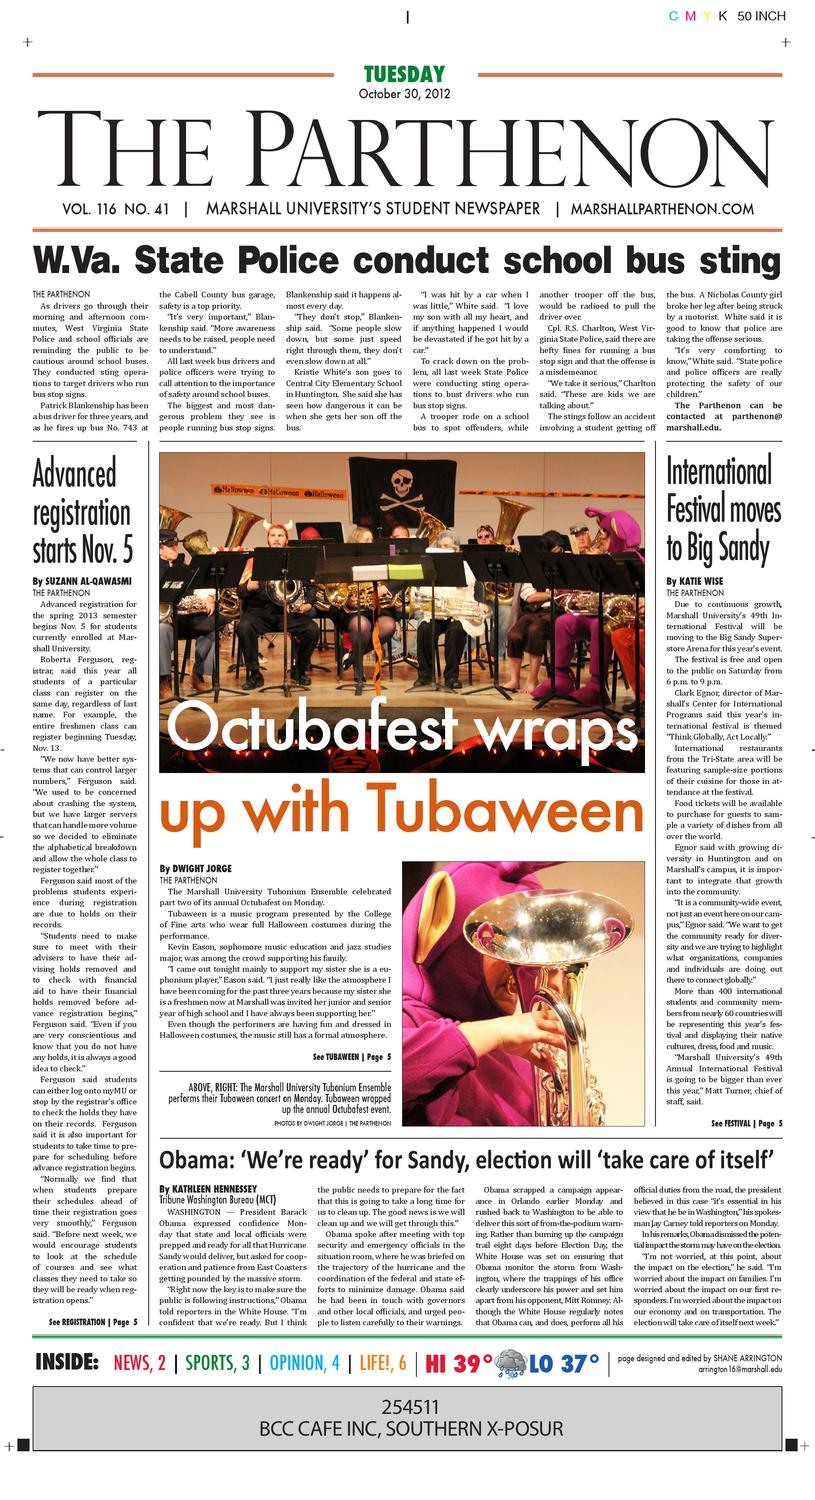 October 30, 2012 Online Edition by Marshall Parthenon - issuu